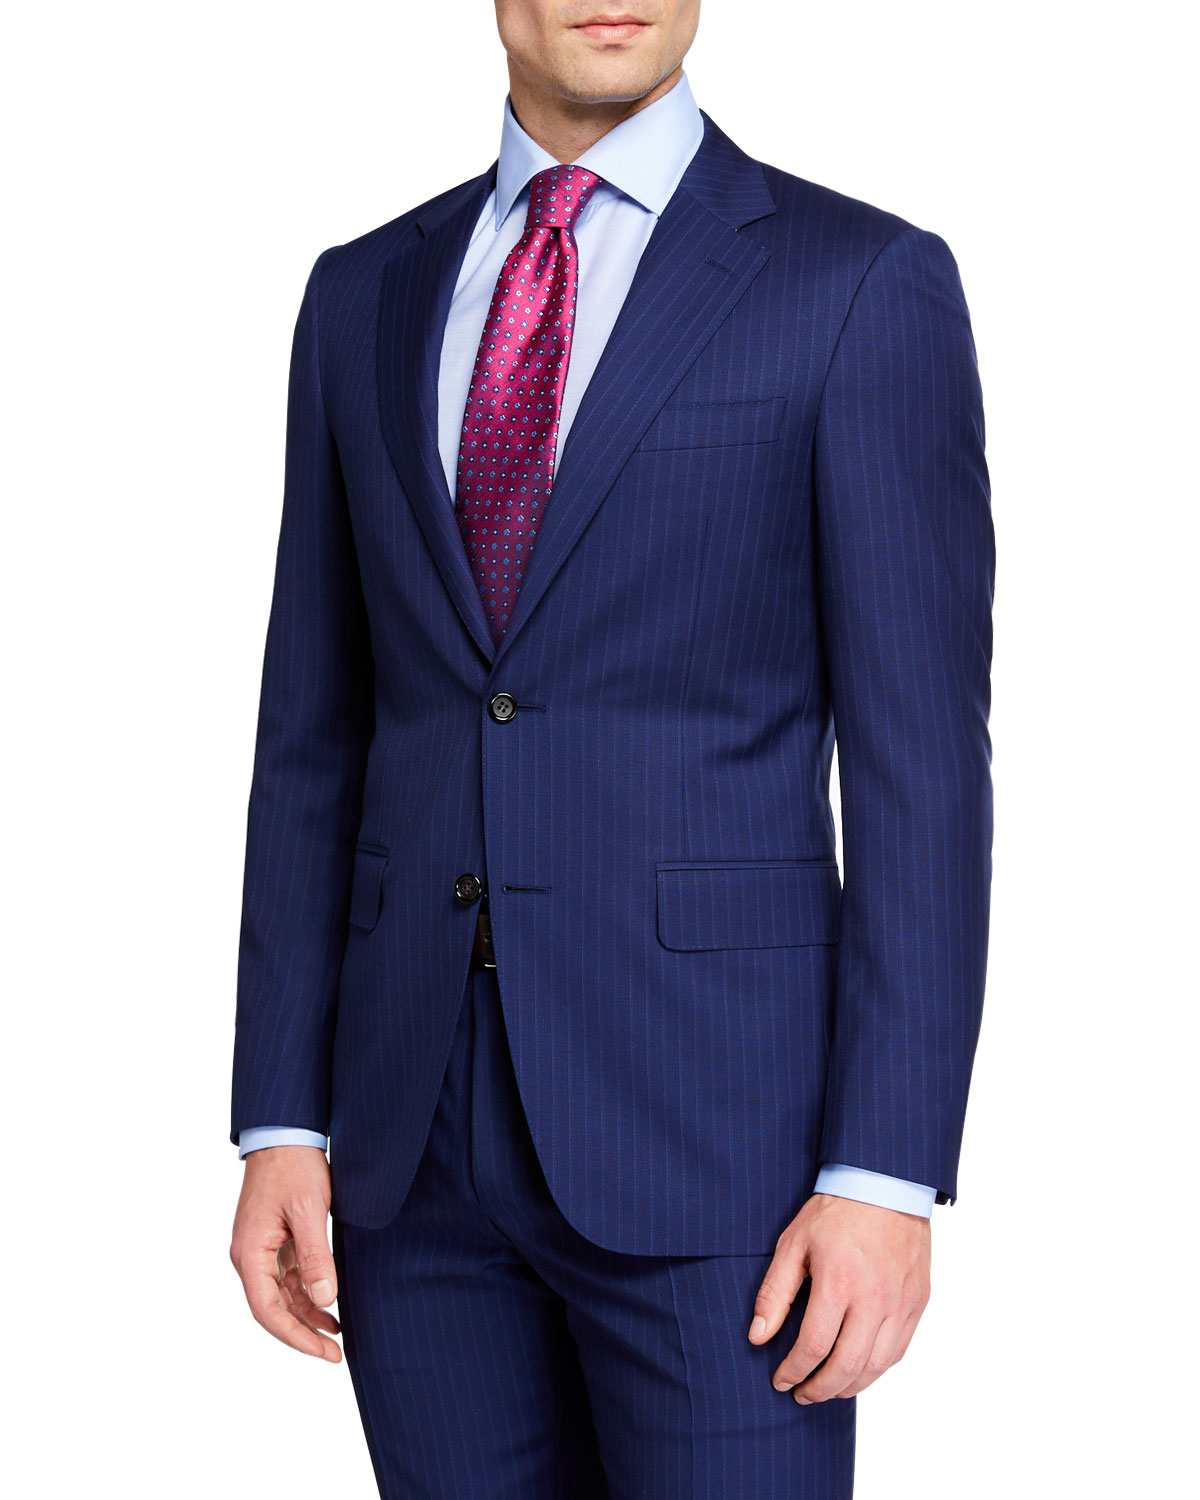 Canali Textured Stripe Two-Piece Suit